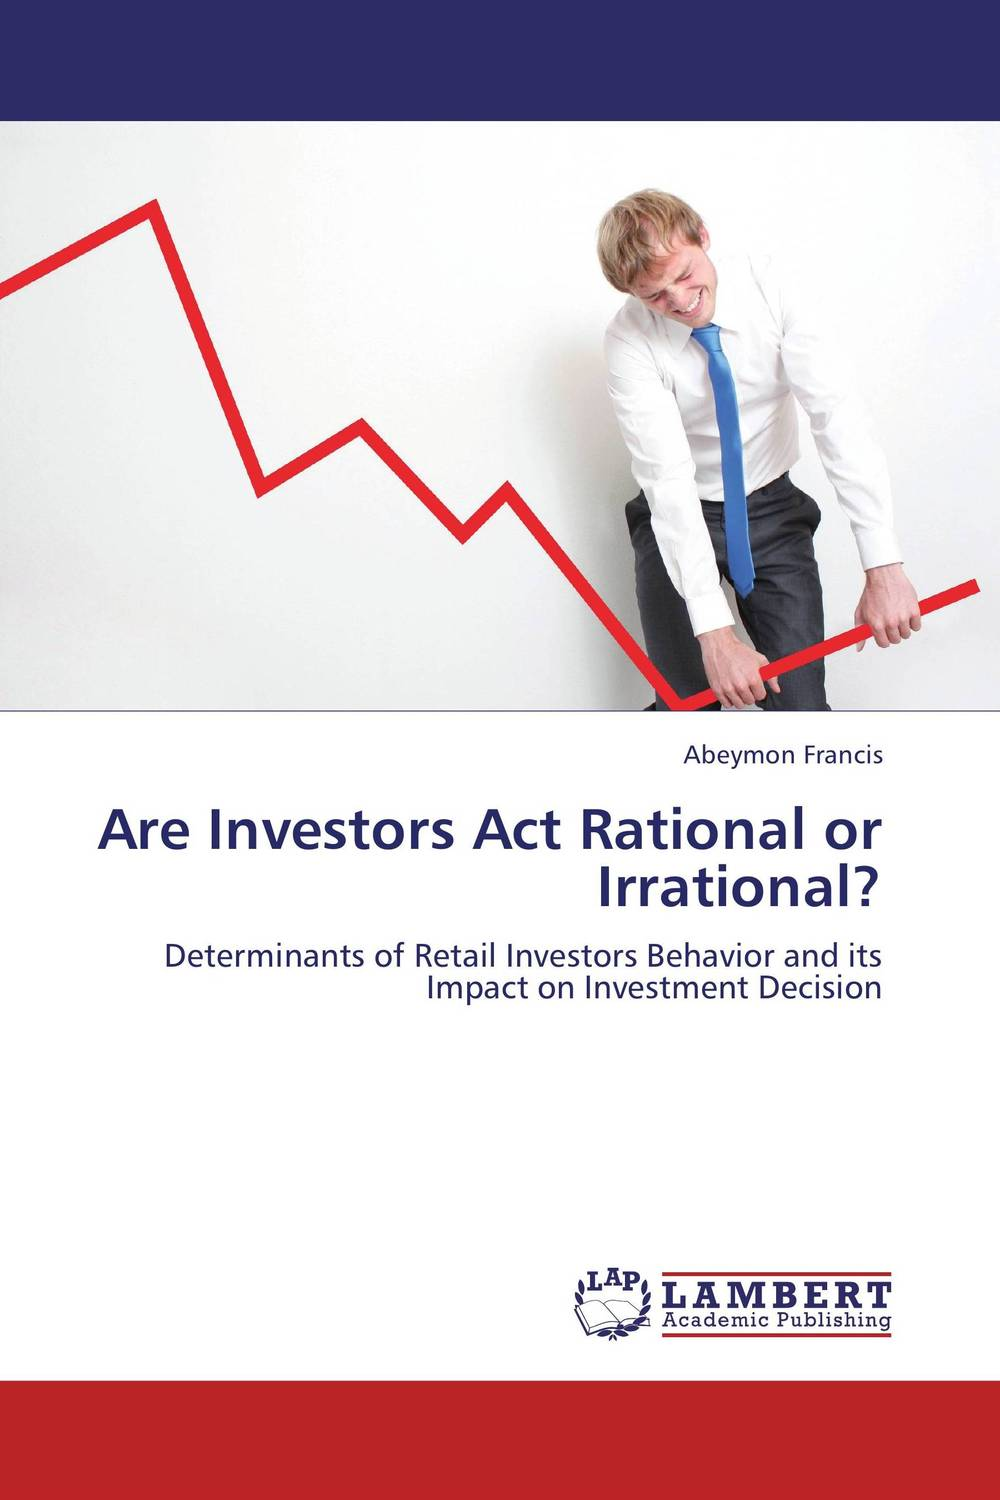 Are Investors Act Rational or Irrational? driven to distraction